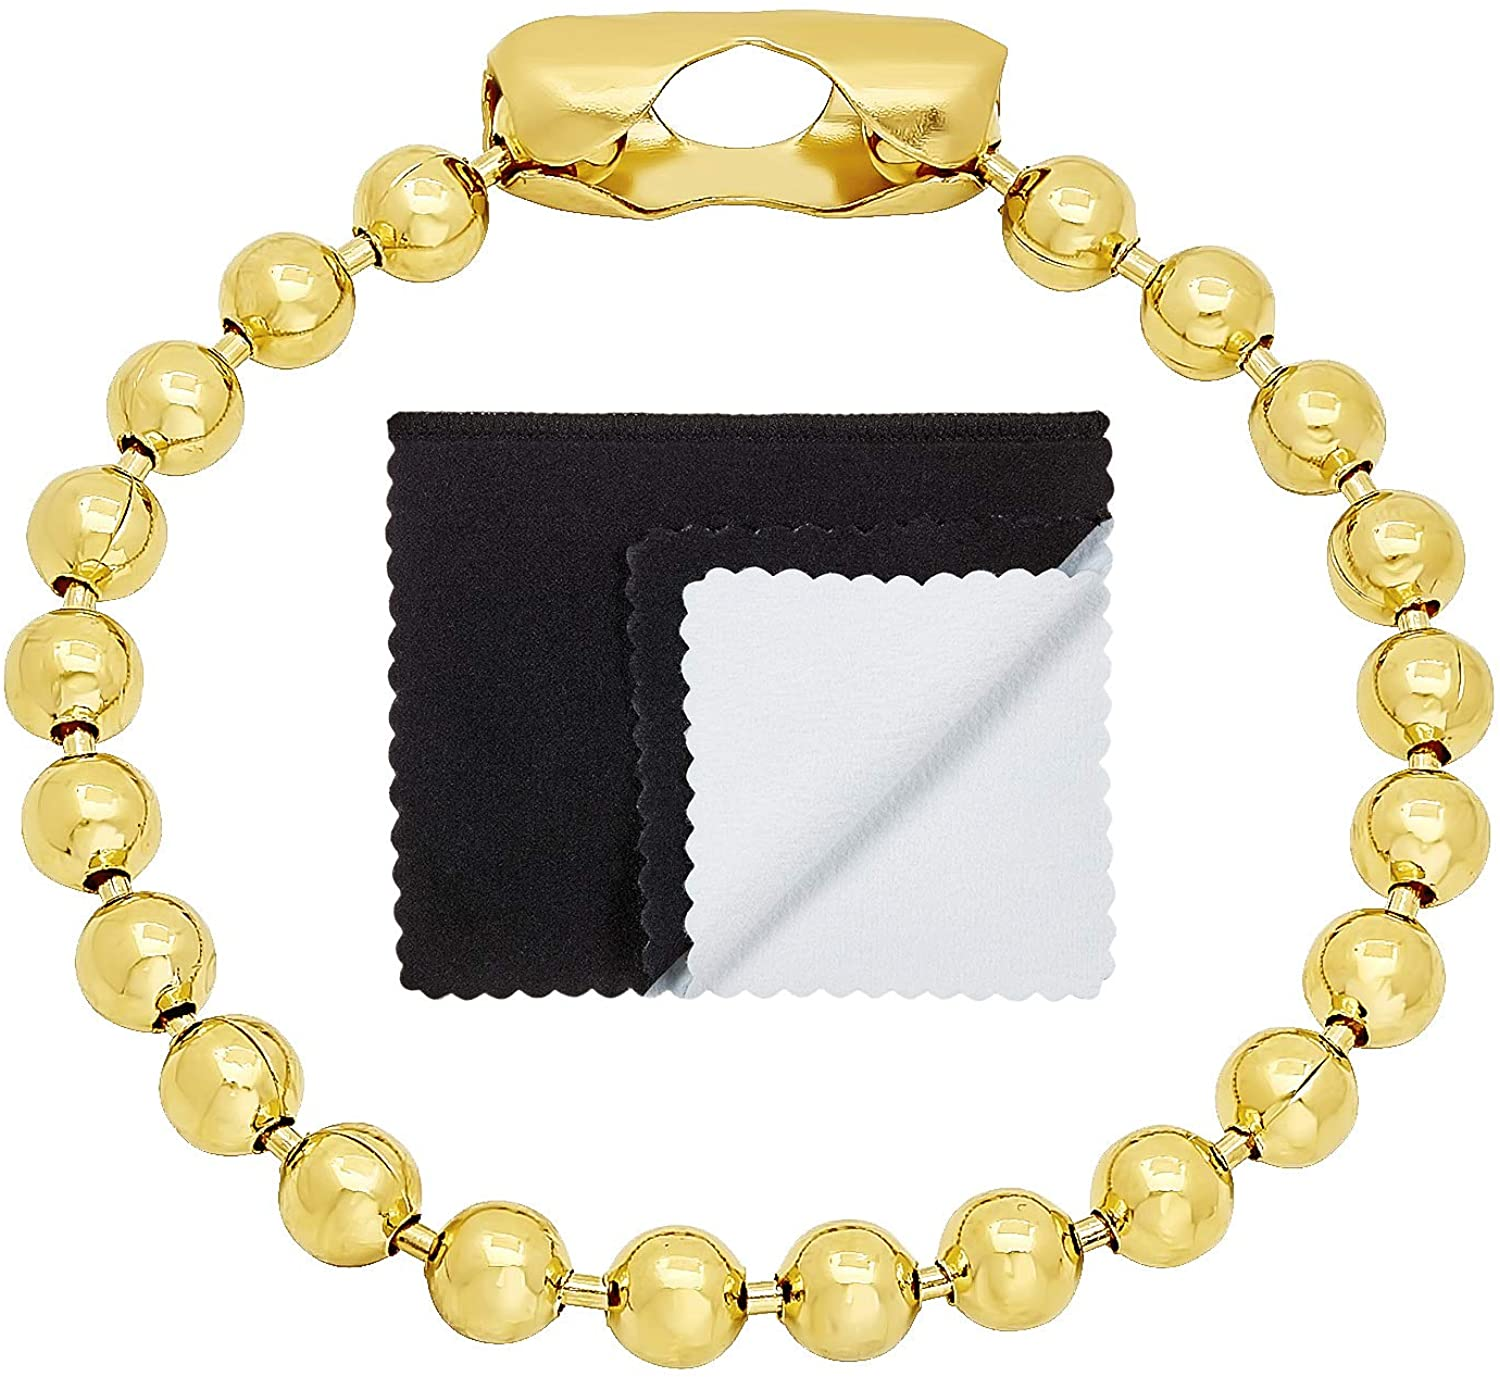 The Bling Factory 6.5mm 0.25 mils (6 microns) 14k Yellow Gold Plated Round Ball Chain Bracelet, 7 inches + Jewelry Cloth & Pouch